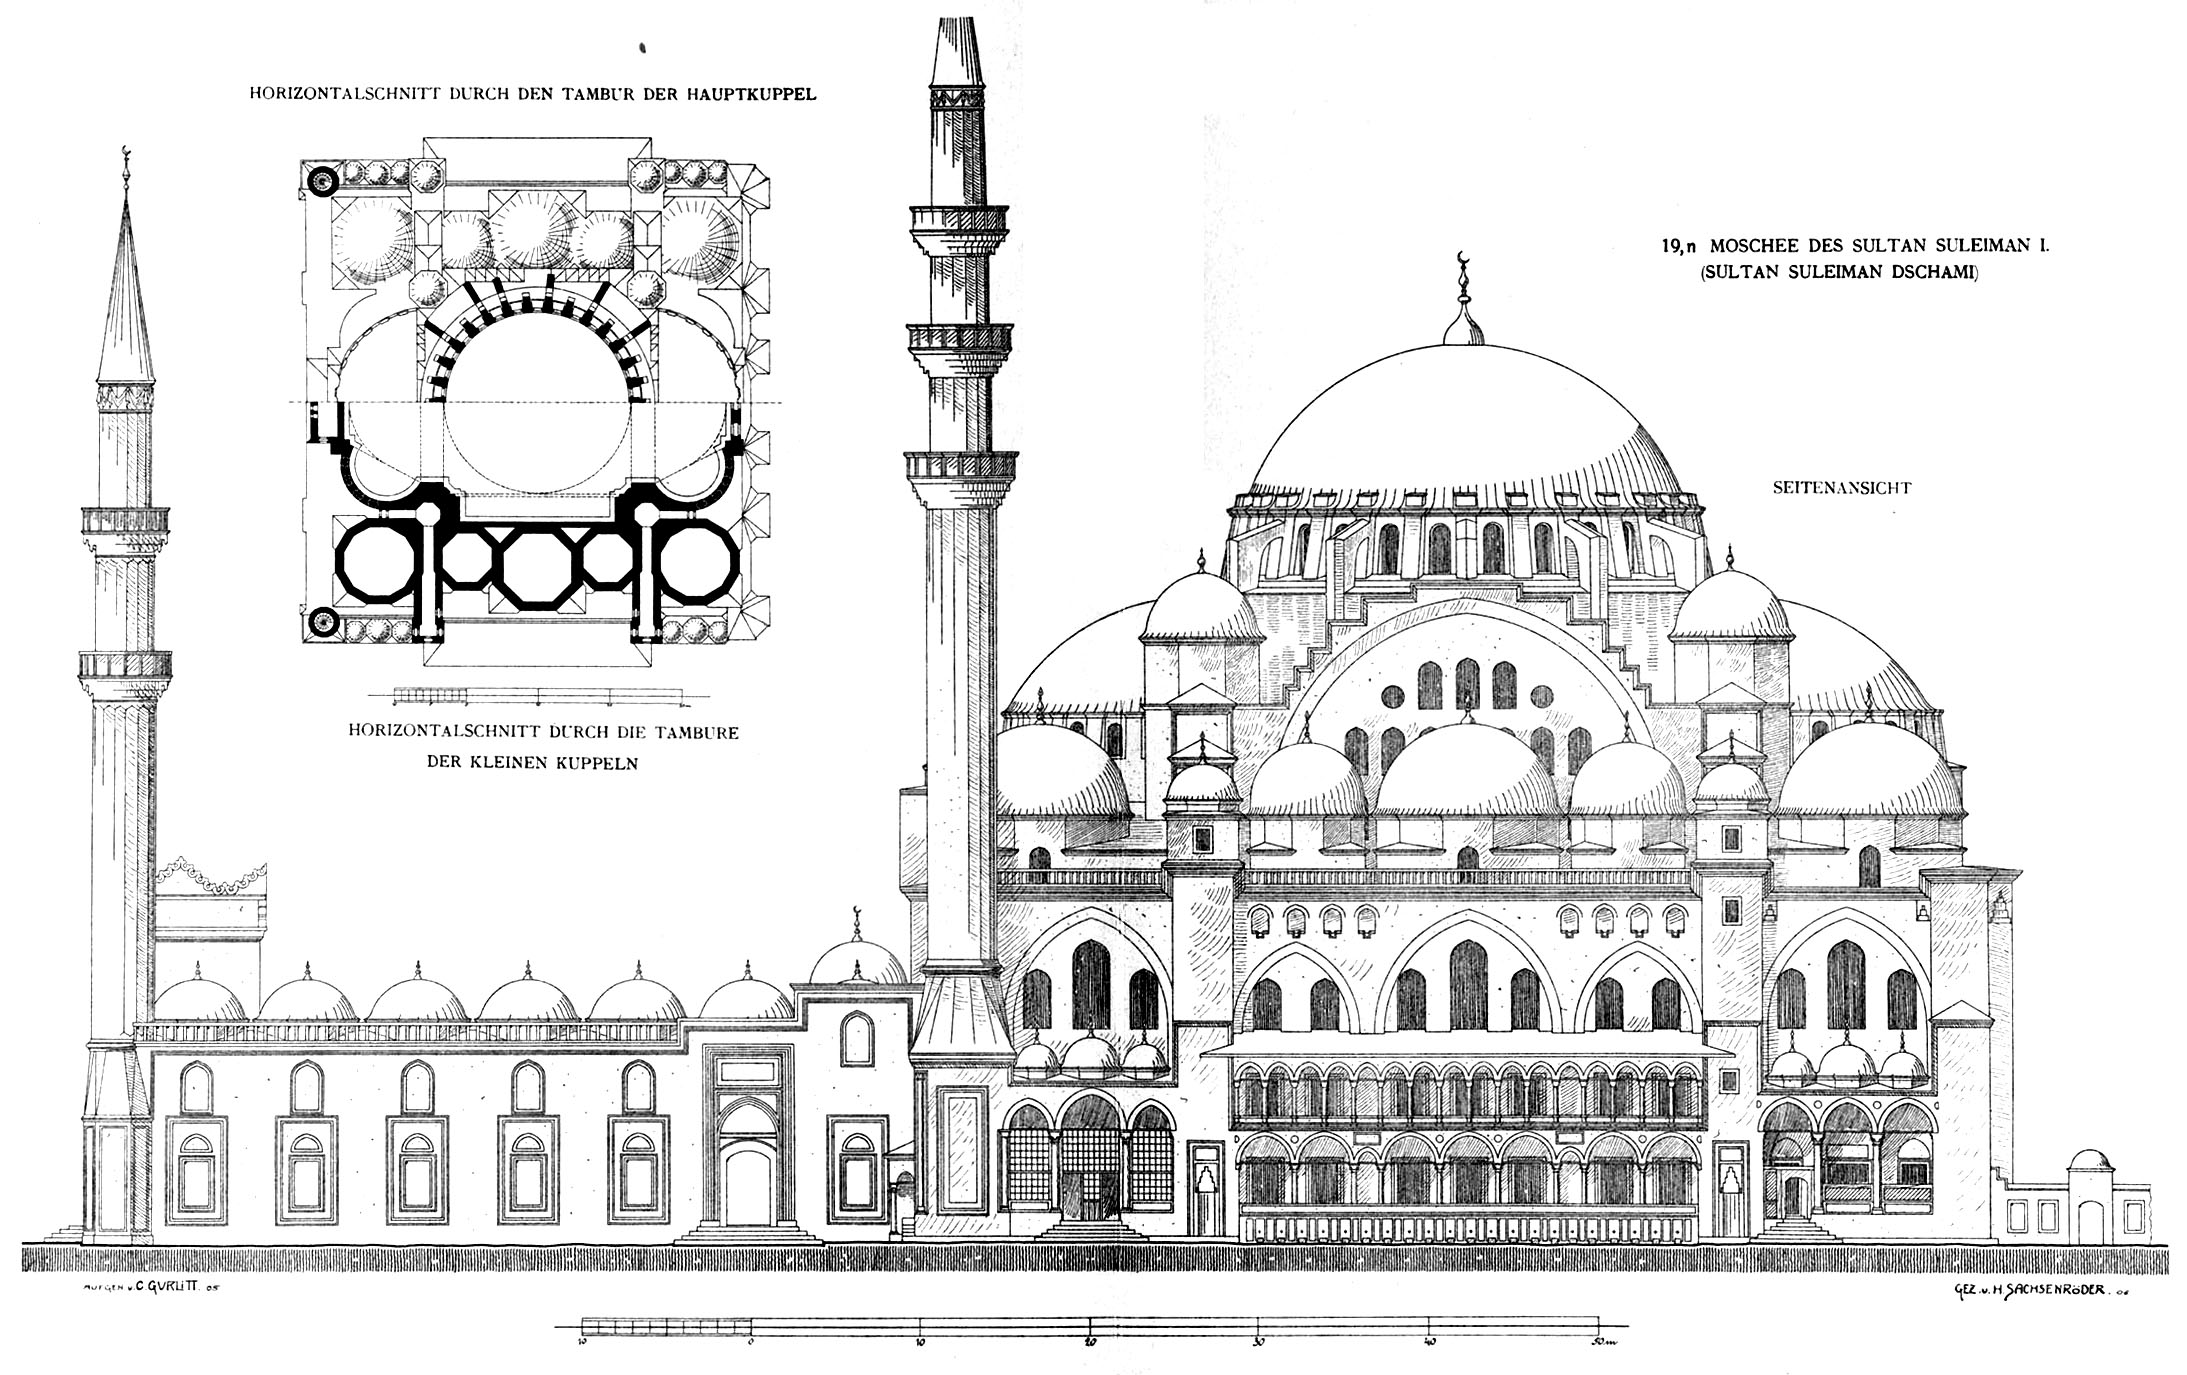 file harem topkapi palace plan 2 svg ottoman empire history file harem topkapi palace plan 2 svg ottoman empire history of architecture pinterest